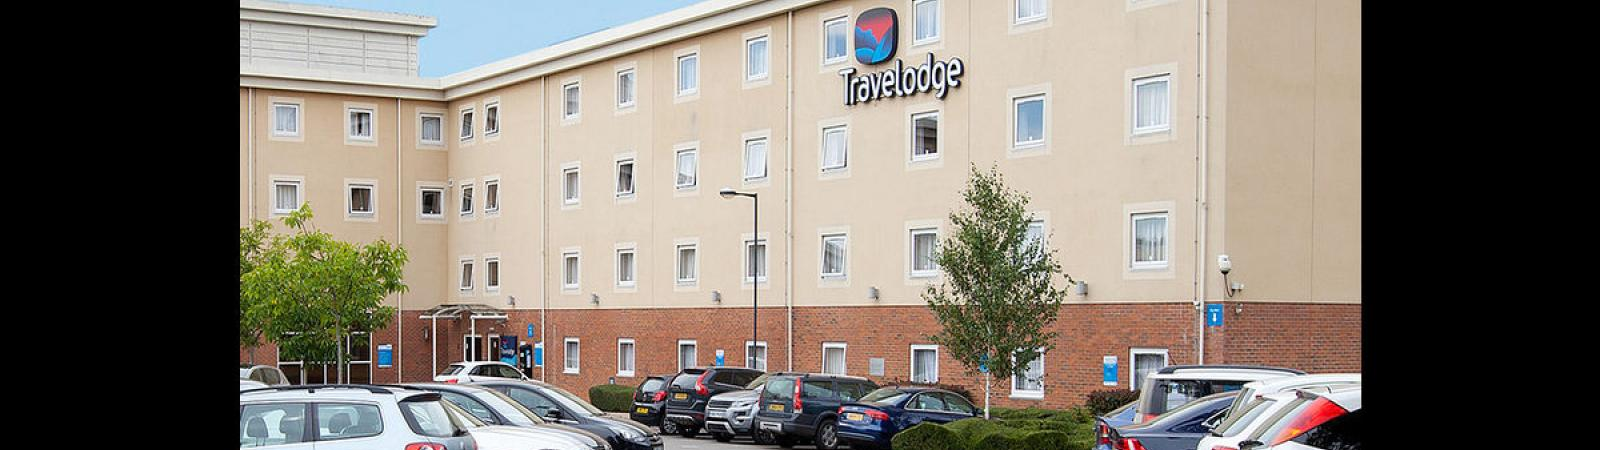 TRAVELODGE CHELTENHAM on Cheltenham Night Out | Promoting Cheltenham's nightlife for a great night out in Cheltenham.